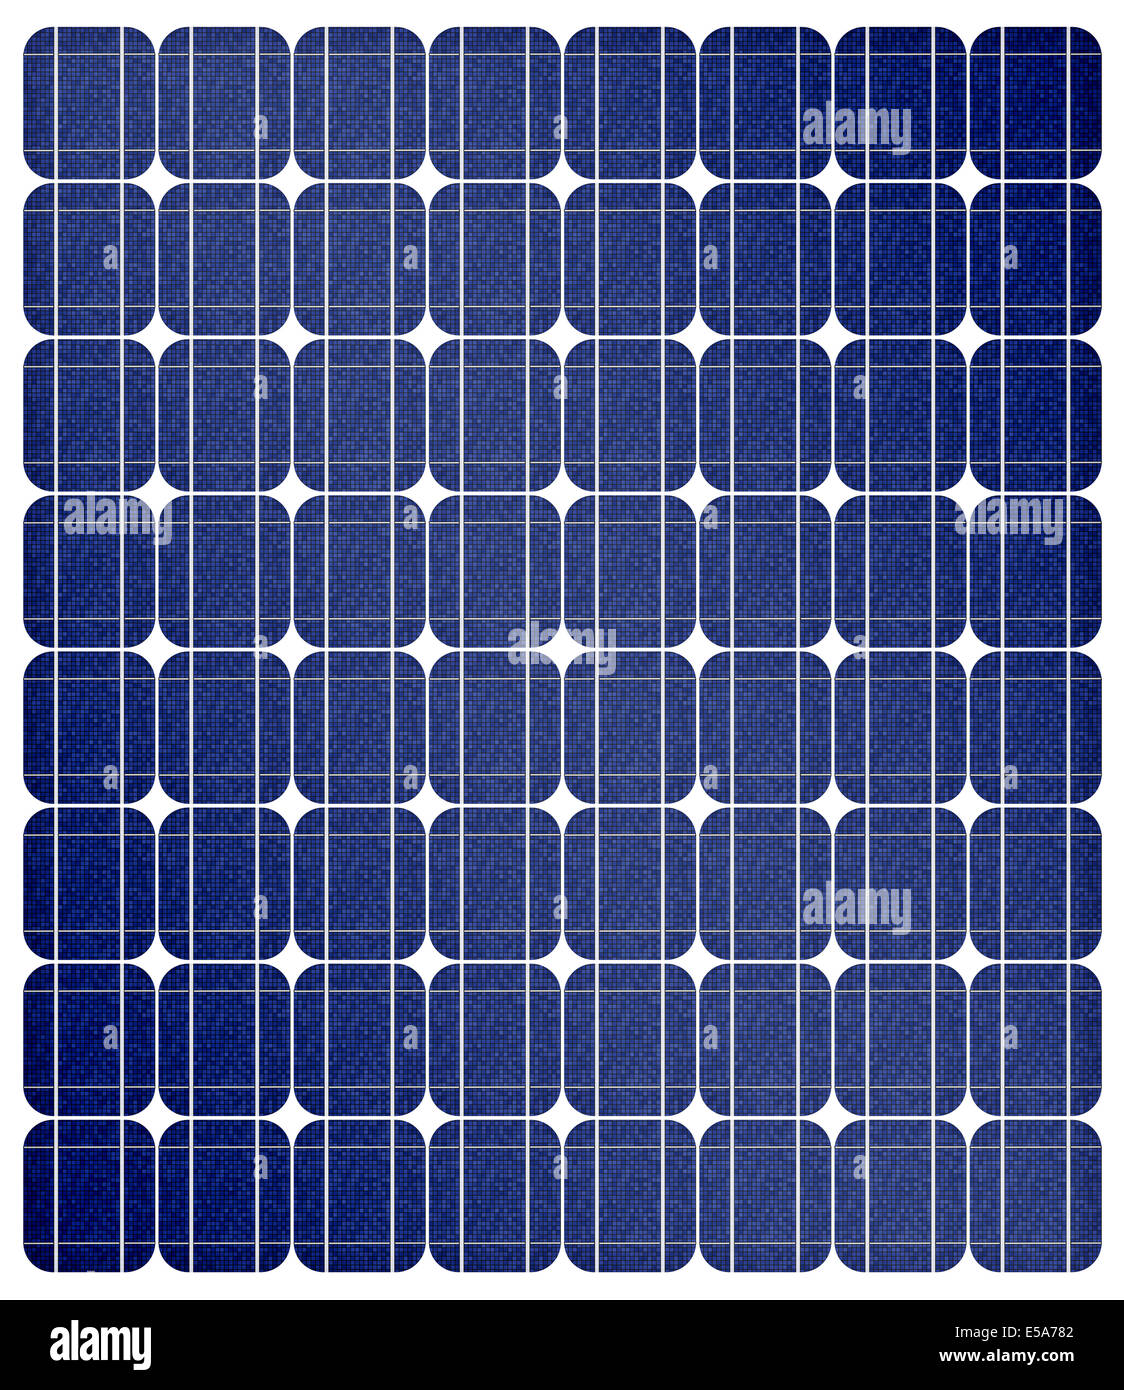 Renewable energy, illustration of a solar cell panels - Stock Image